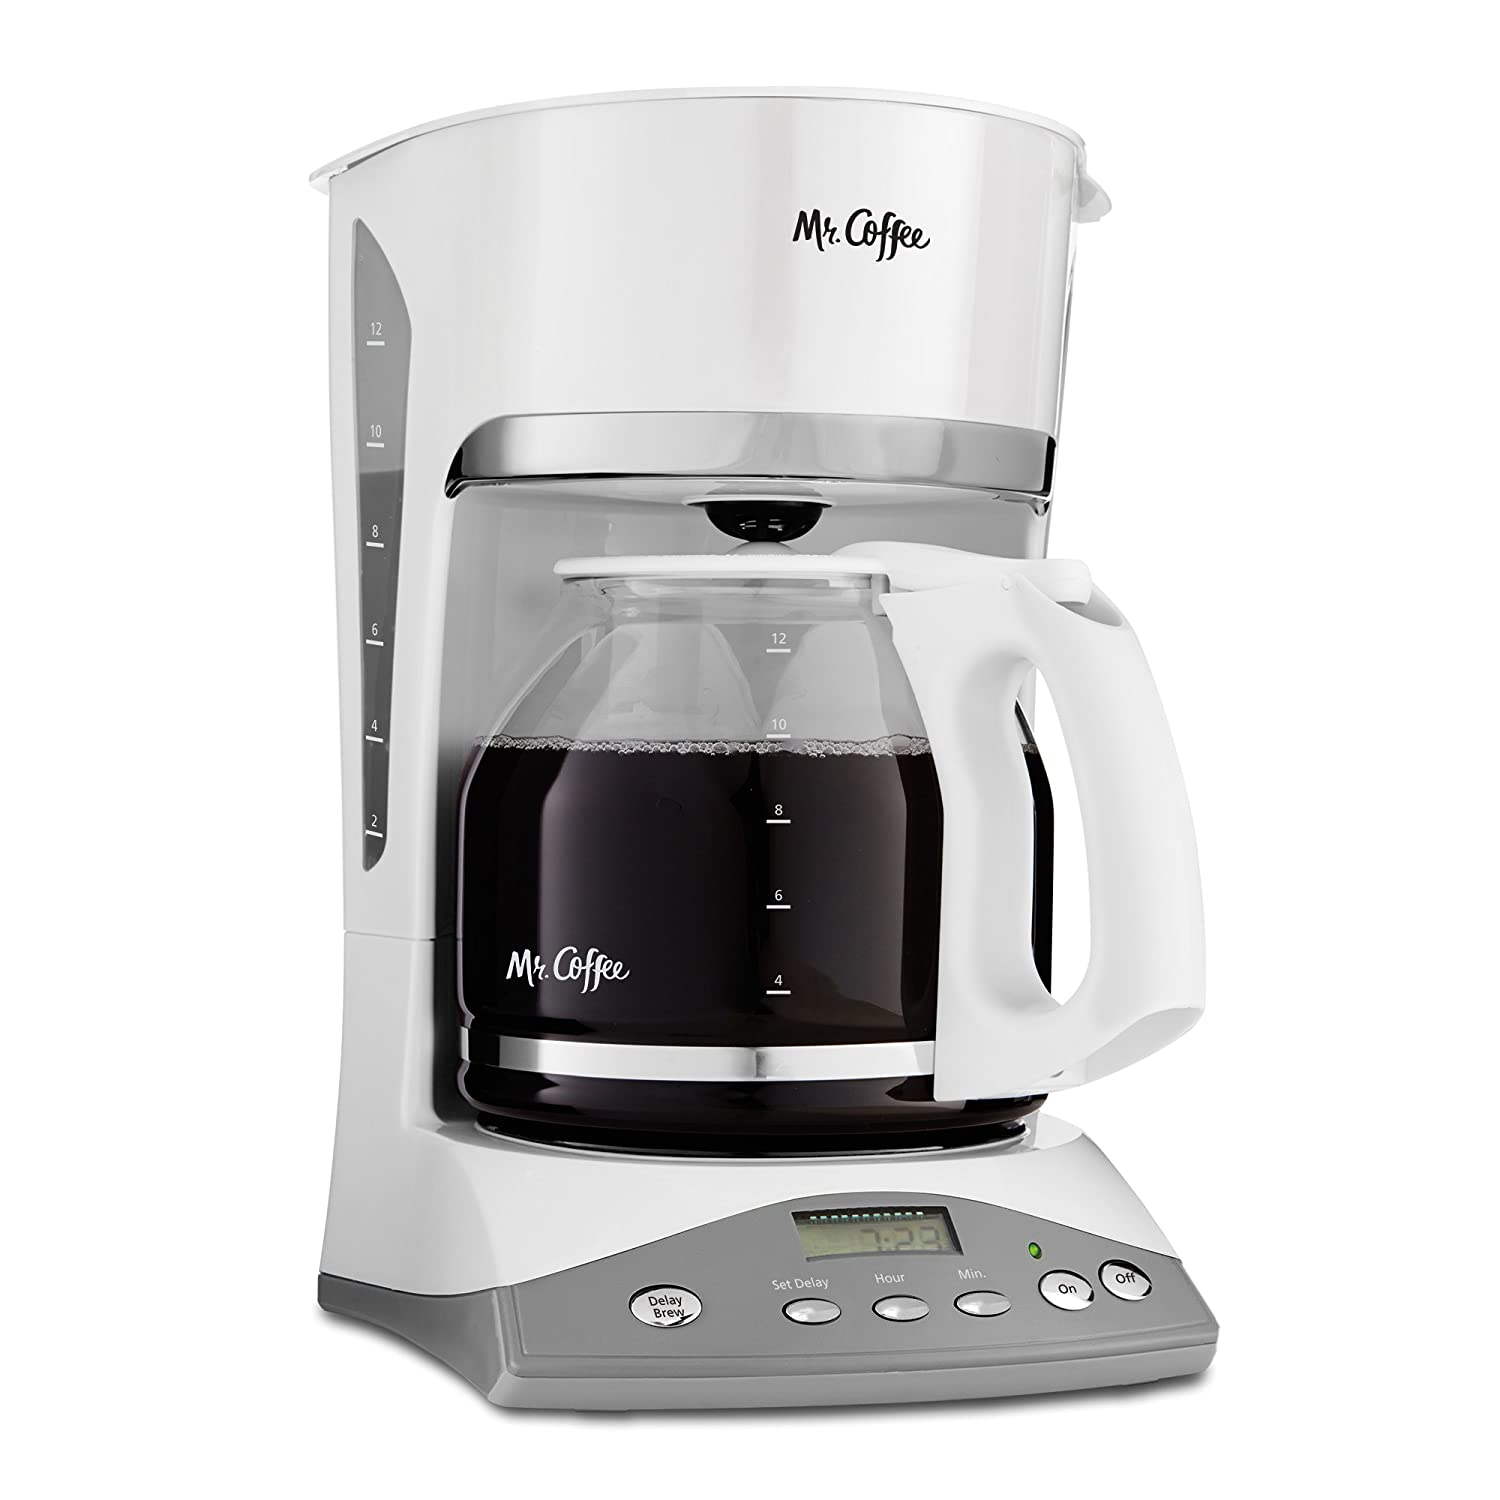 Mr. Coffee 12-Cup Programmable Coffee Maker, White